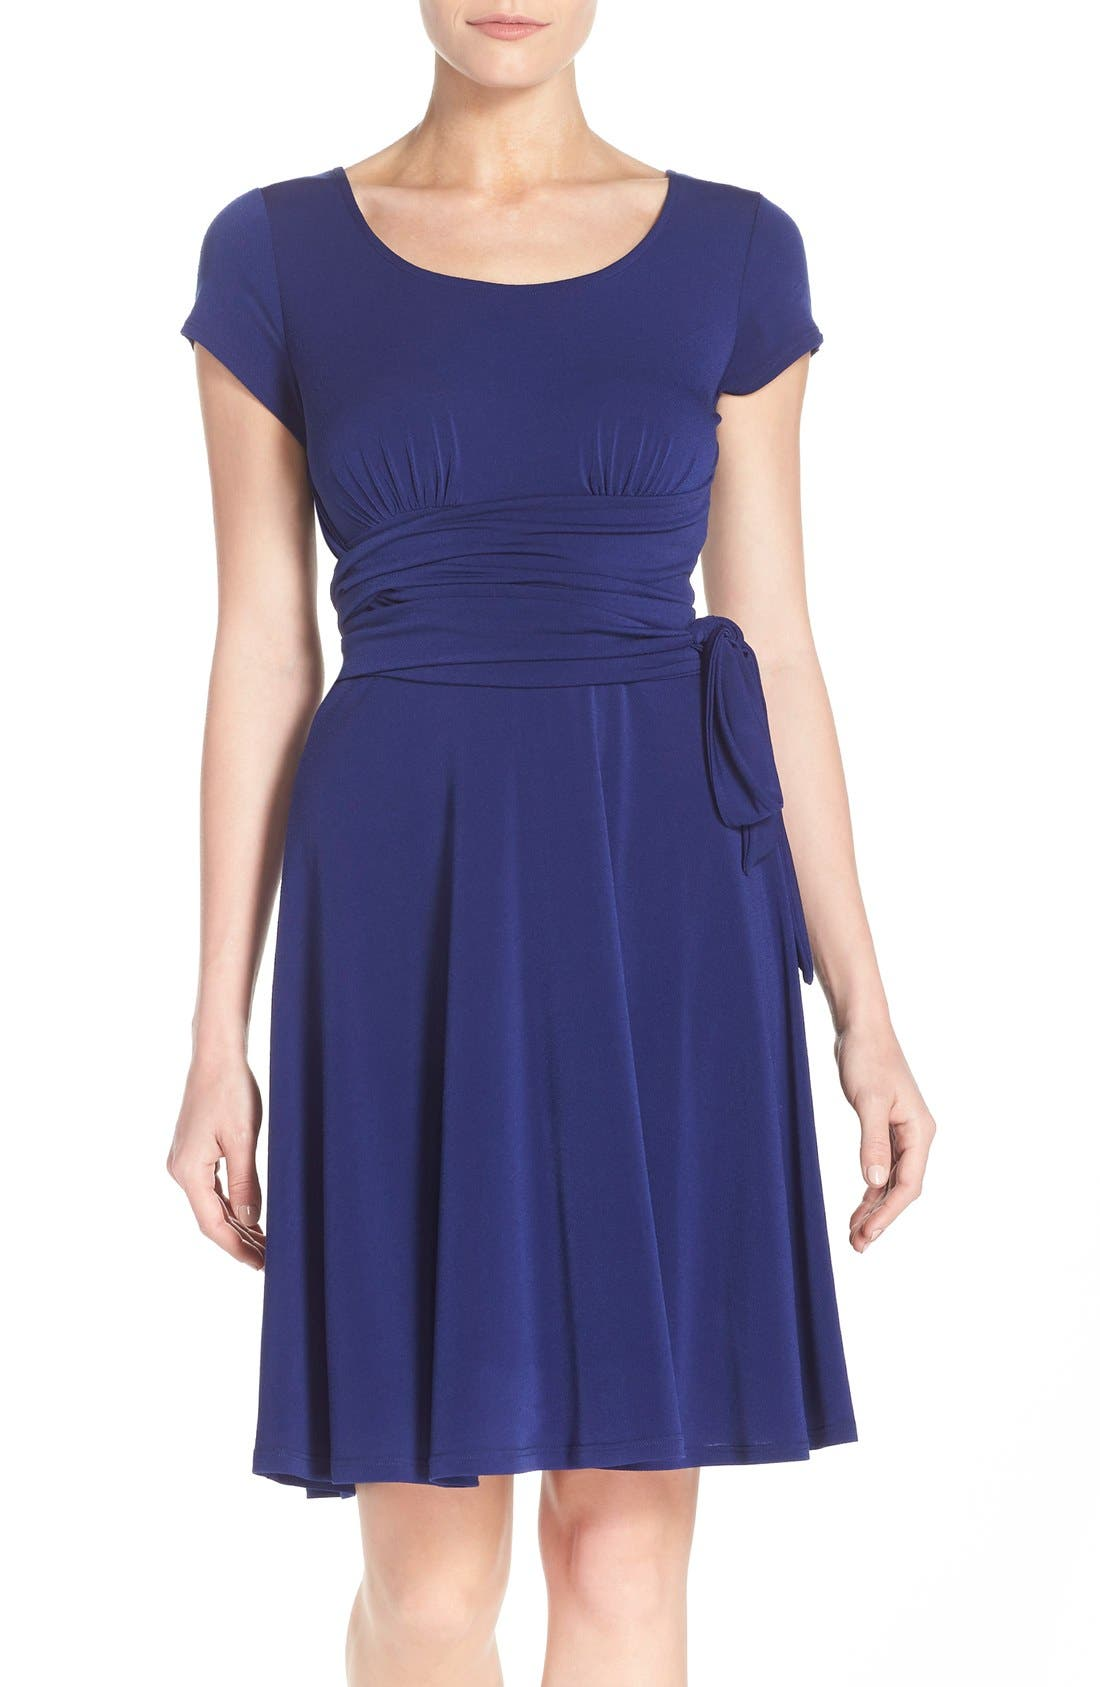 Main Image - Leota Scoop Neck Jersey Fit & Flare Dress